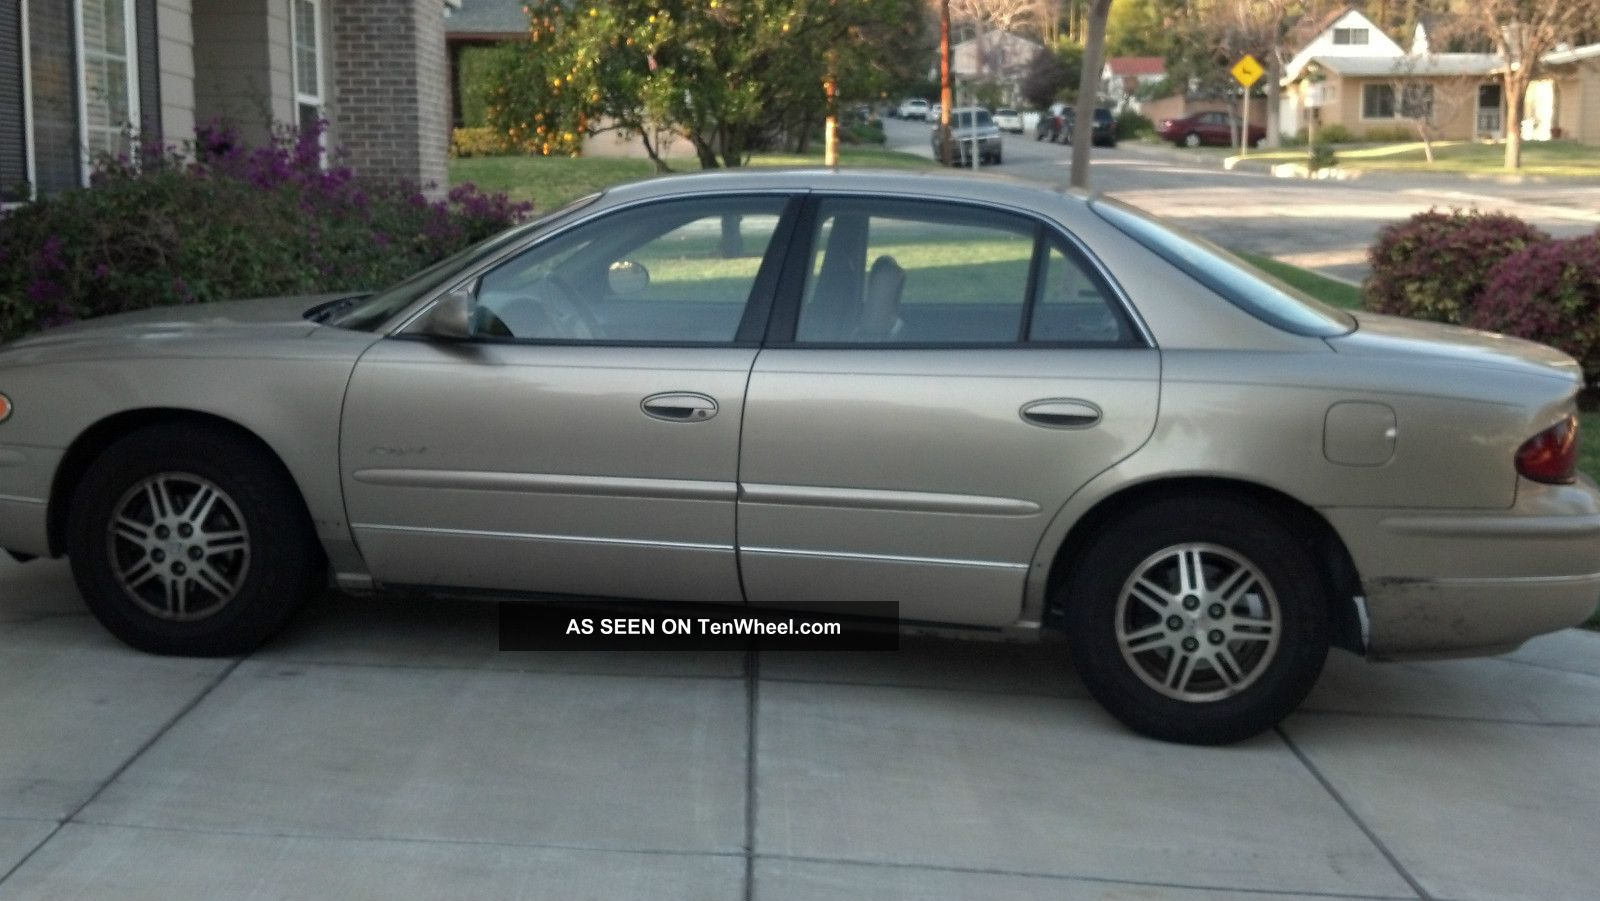 1999 Buick Regal Ls Sedan 4 Door 3 8l